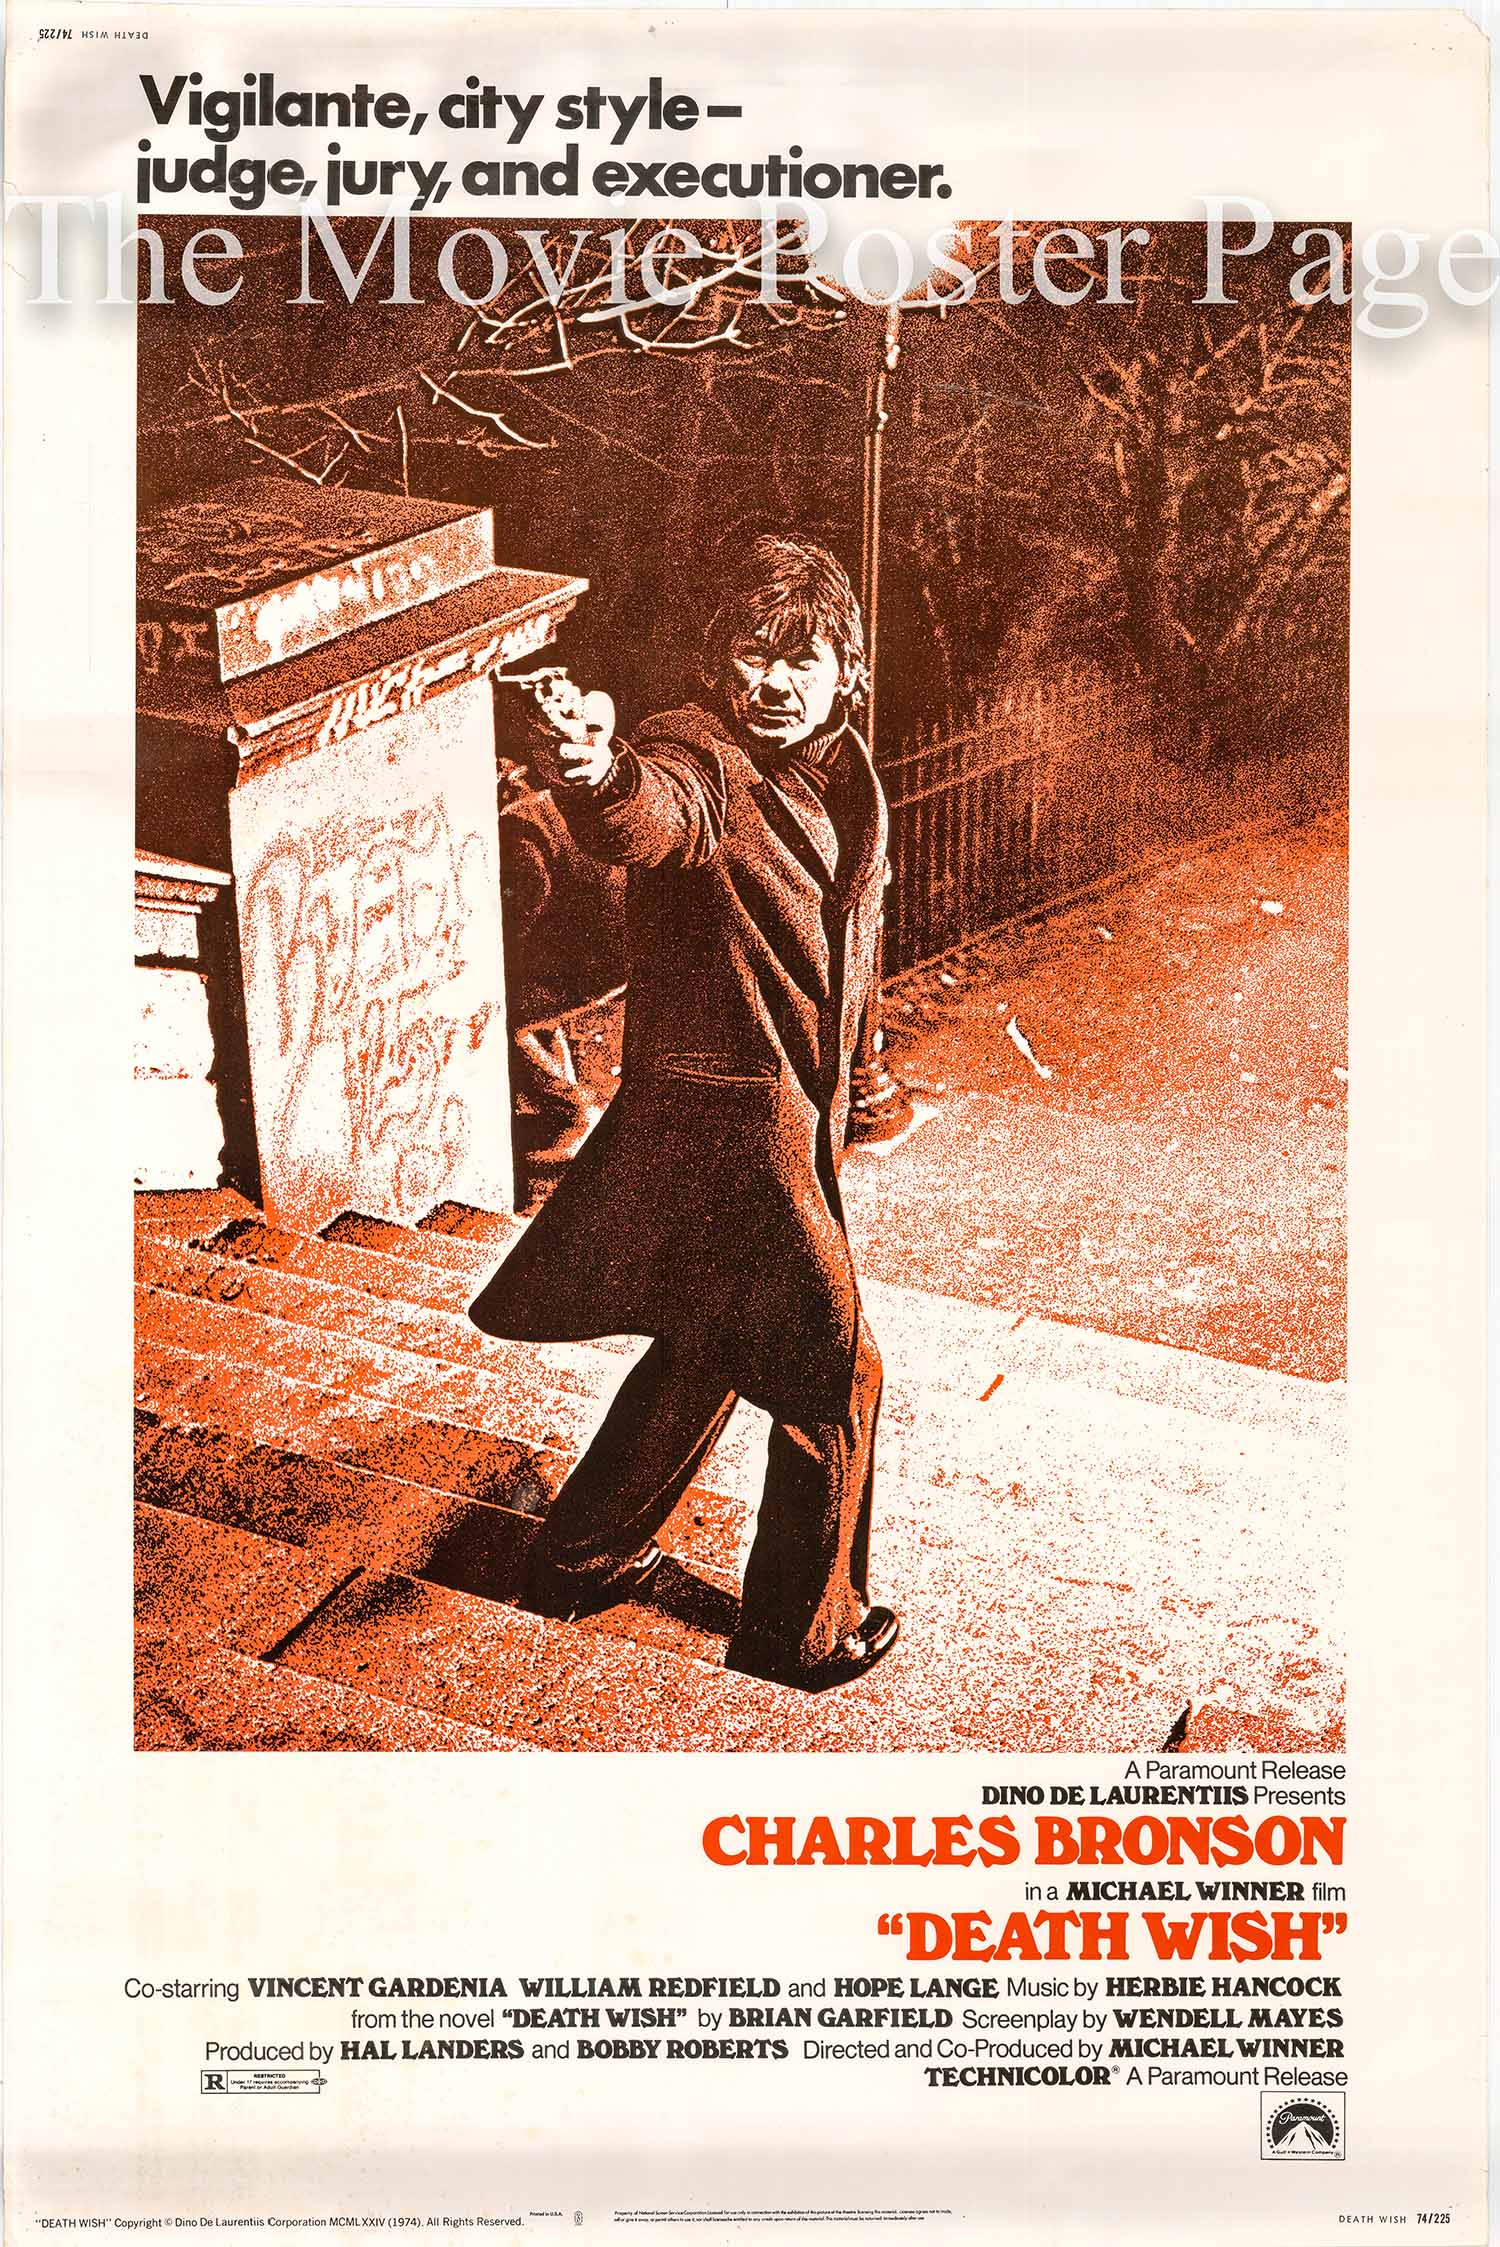 Pictured is a US 40x60 promotional poster for the 1974 Michael Winner film Death Wish starring Charles Bronson.